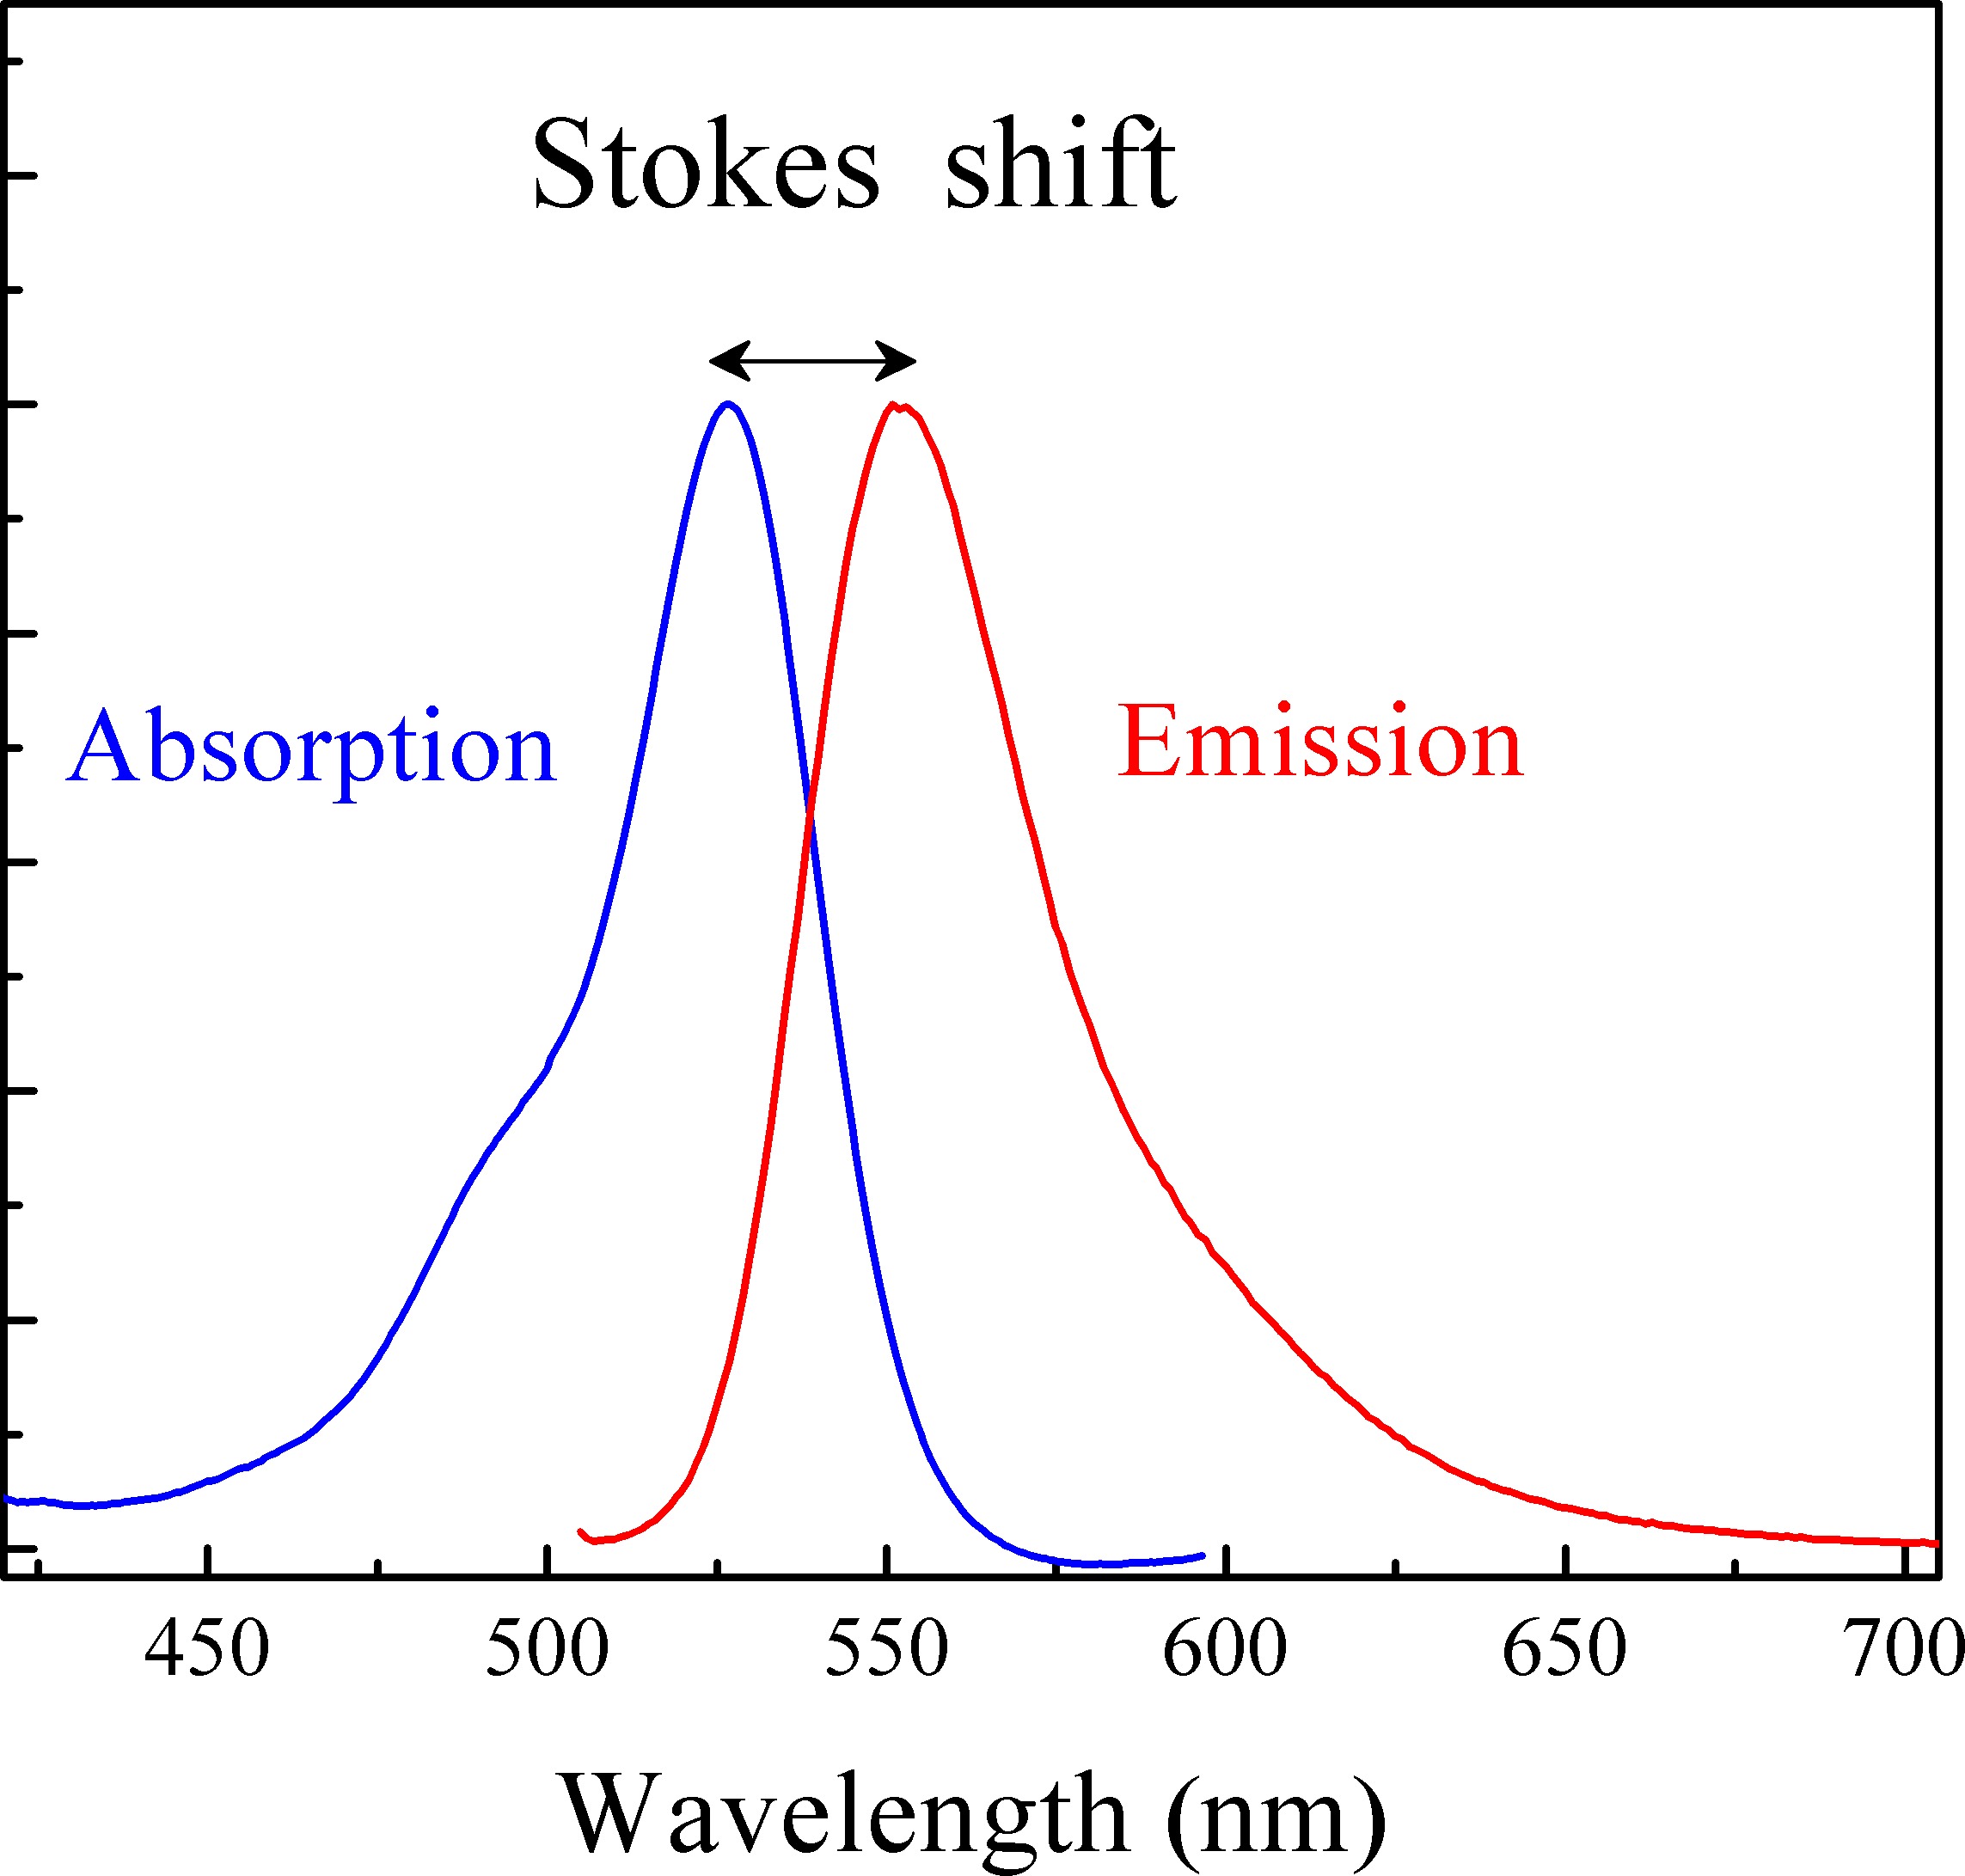 Stokes shift - Wikipedia